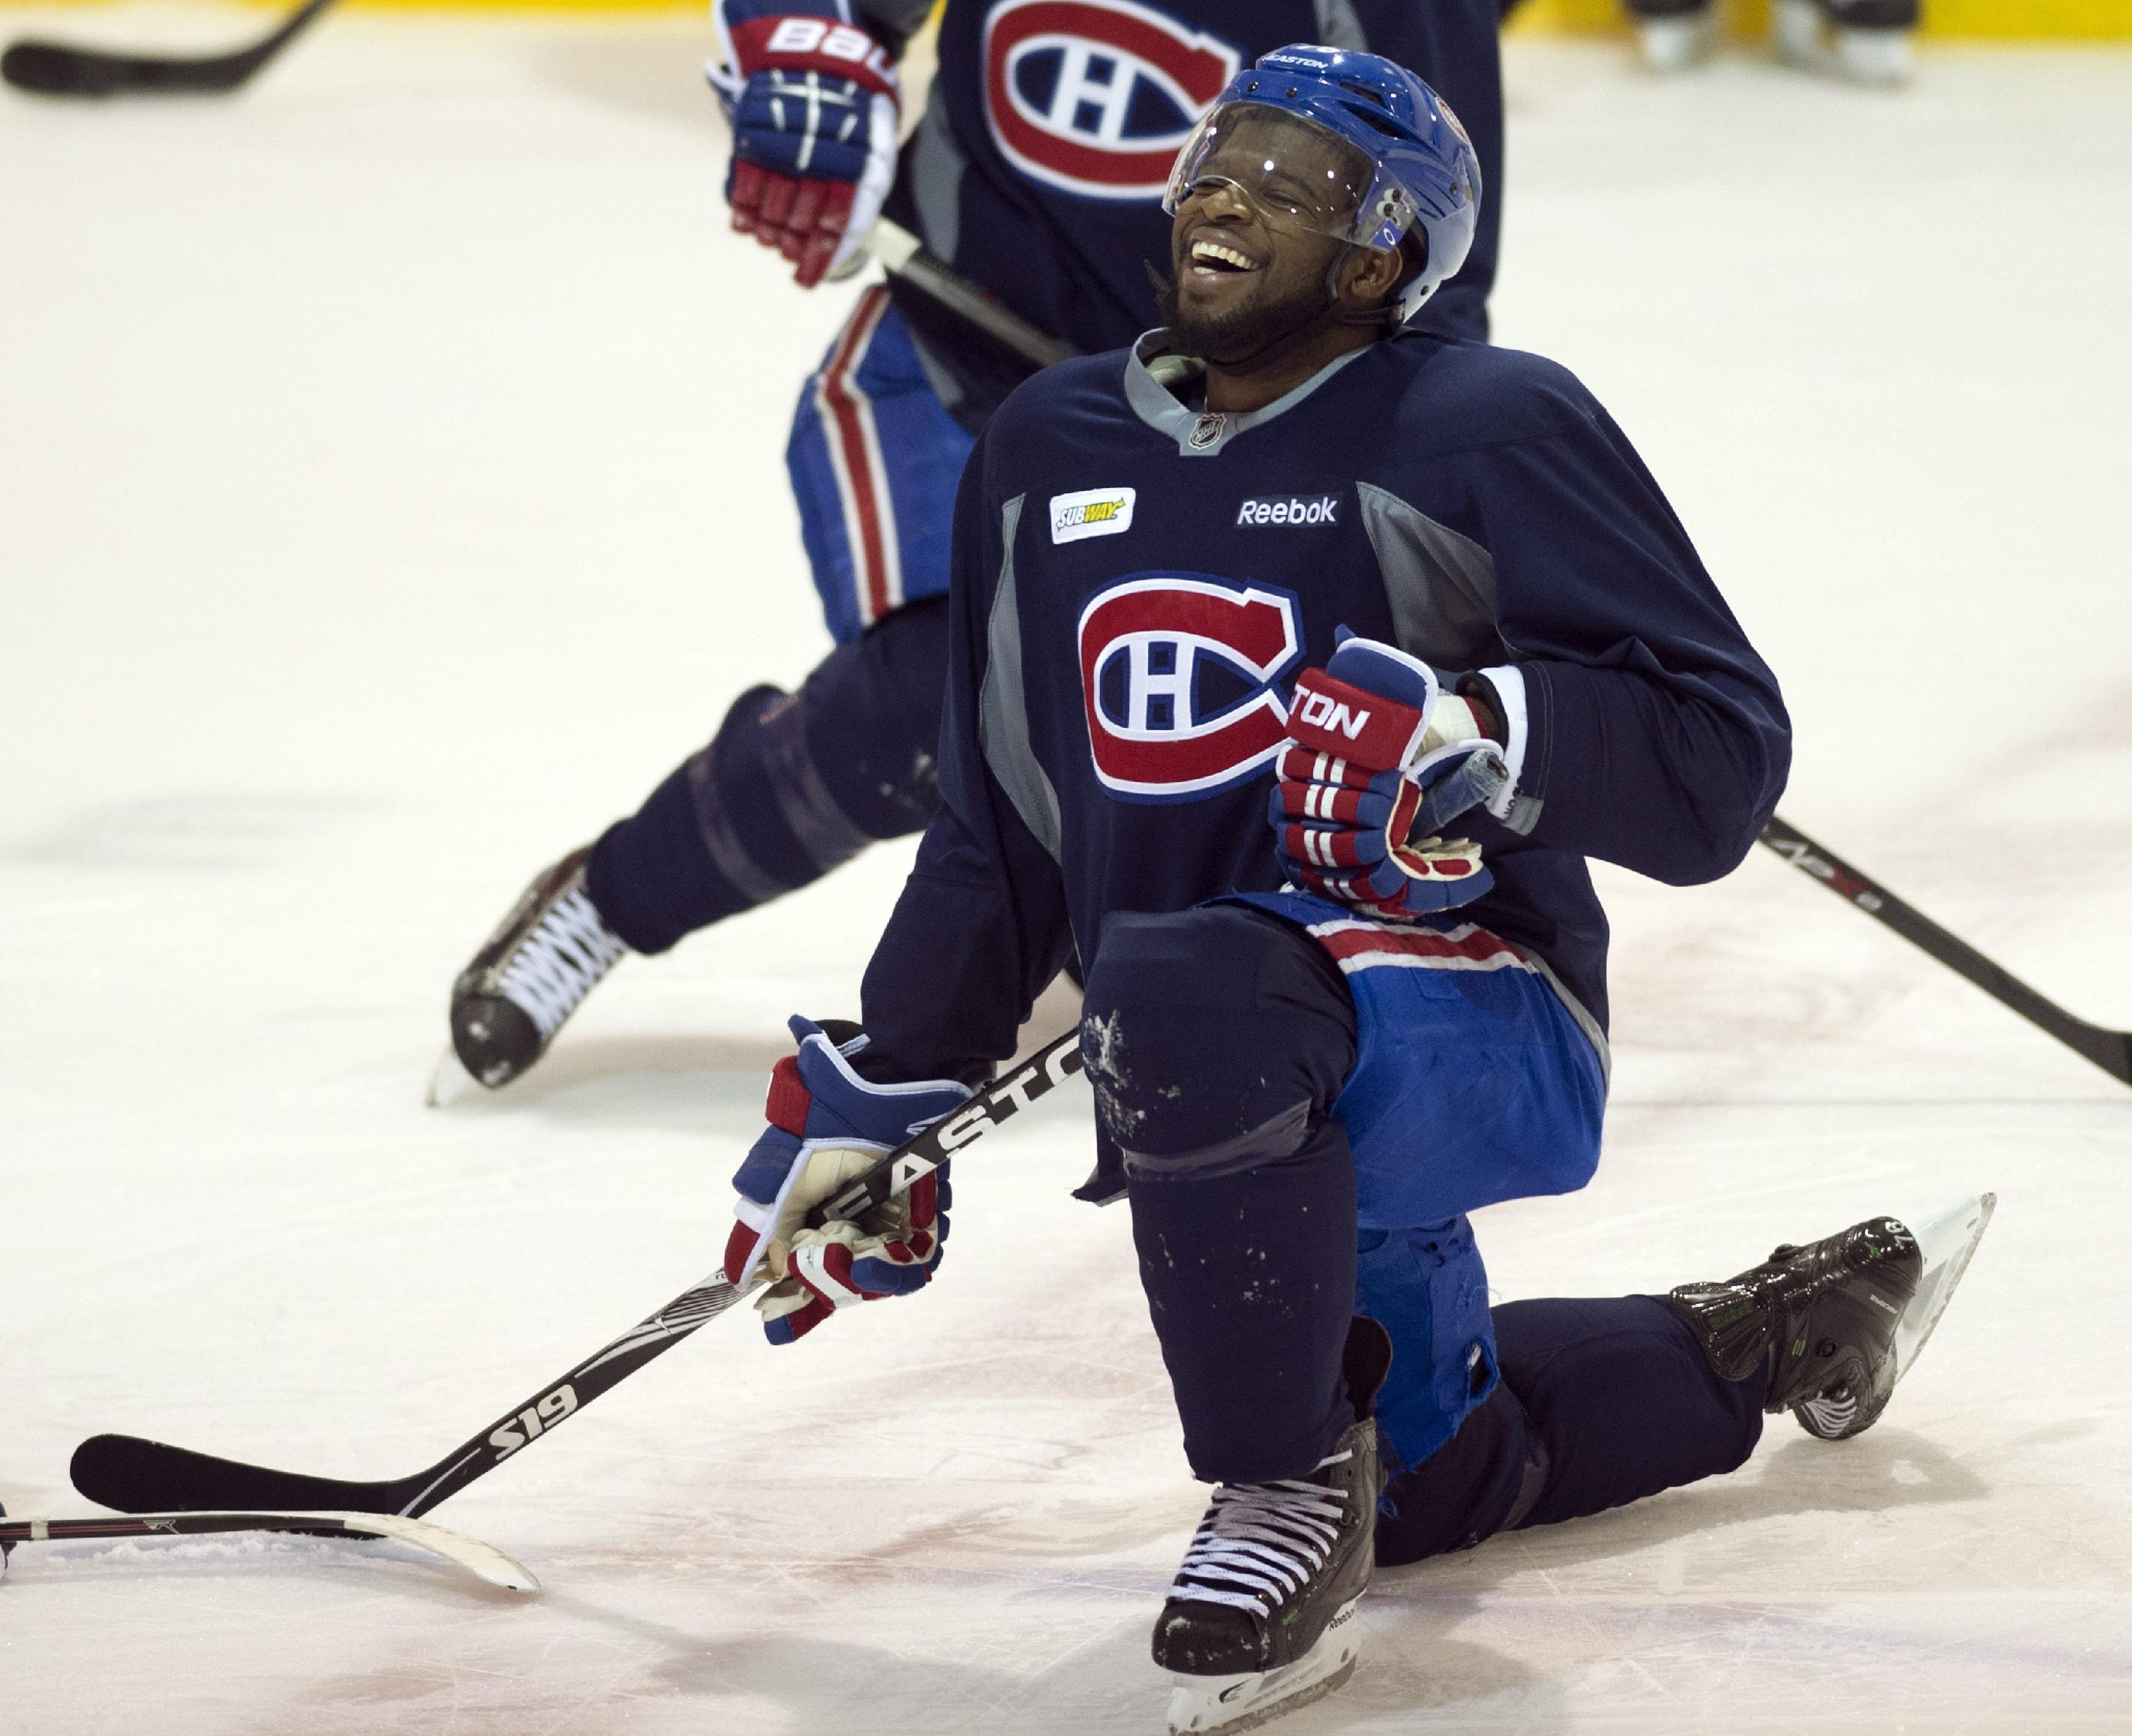 Montreal Canadiens defenseman P.K. Subban has a laugh as he stretches  during NHL hockey practice Friday 6dff7e002